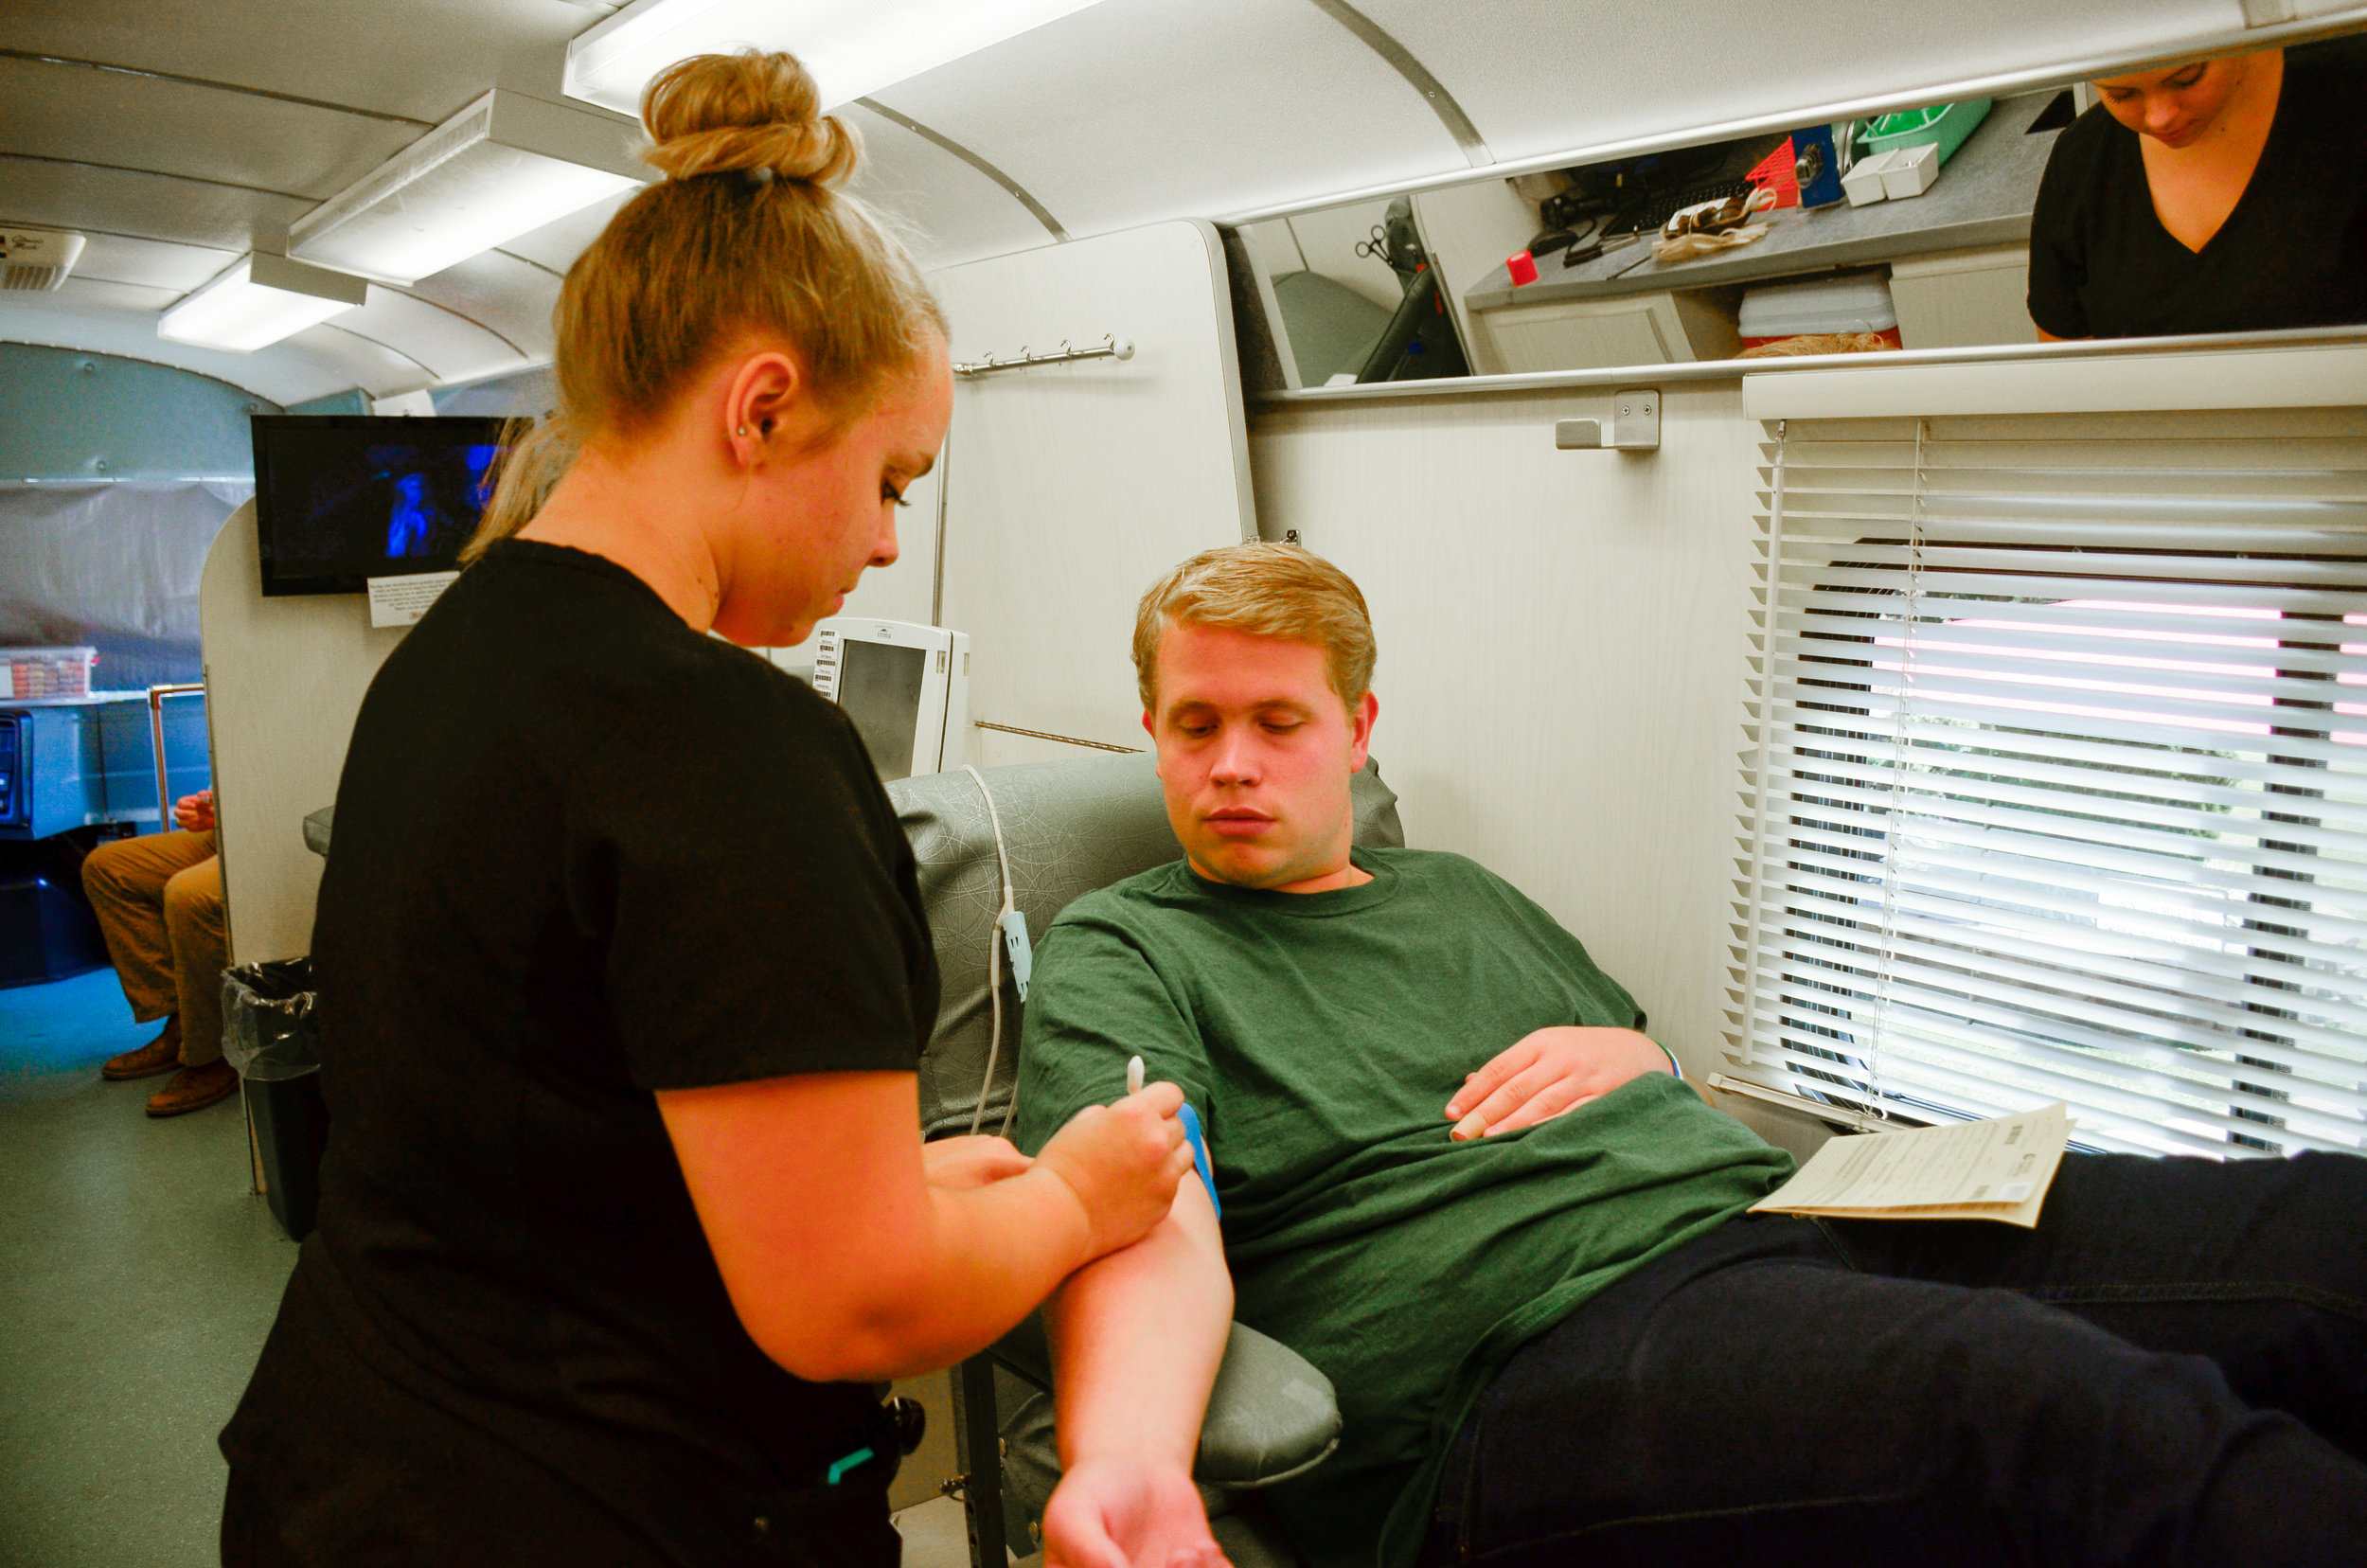 """Austin Cathey, sophomore, prepares himself to donate blood because, """"it's the right thing to do to help those who need blood."""""""